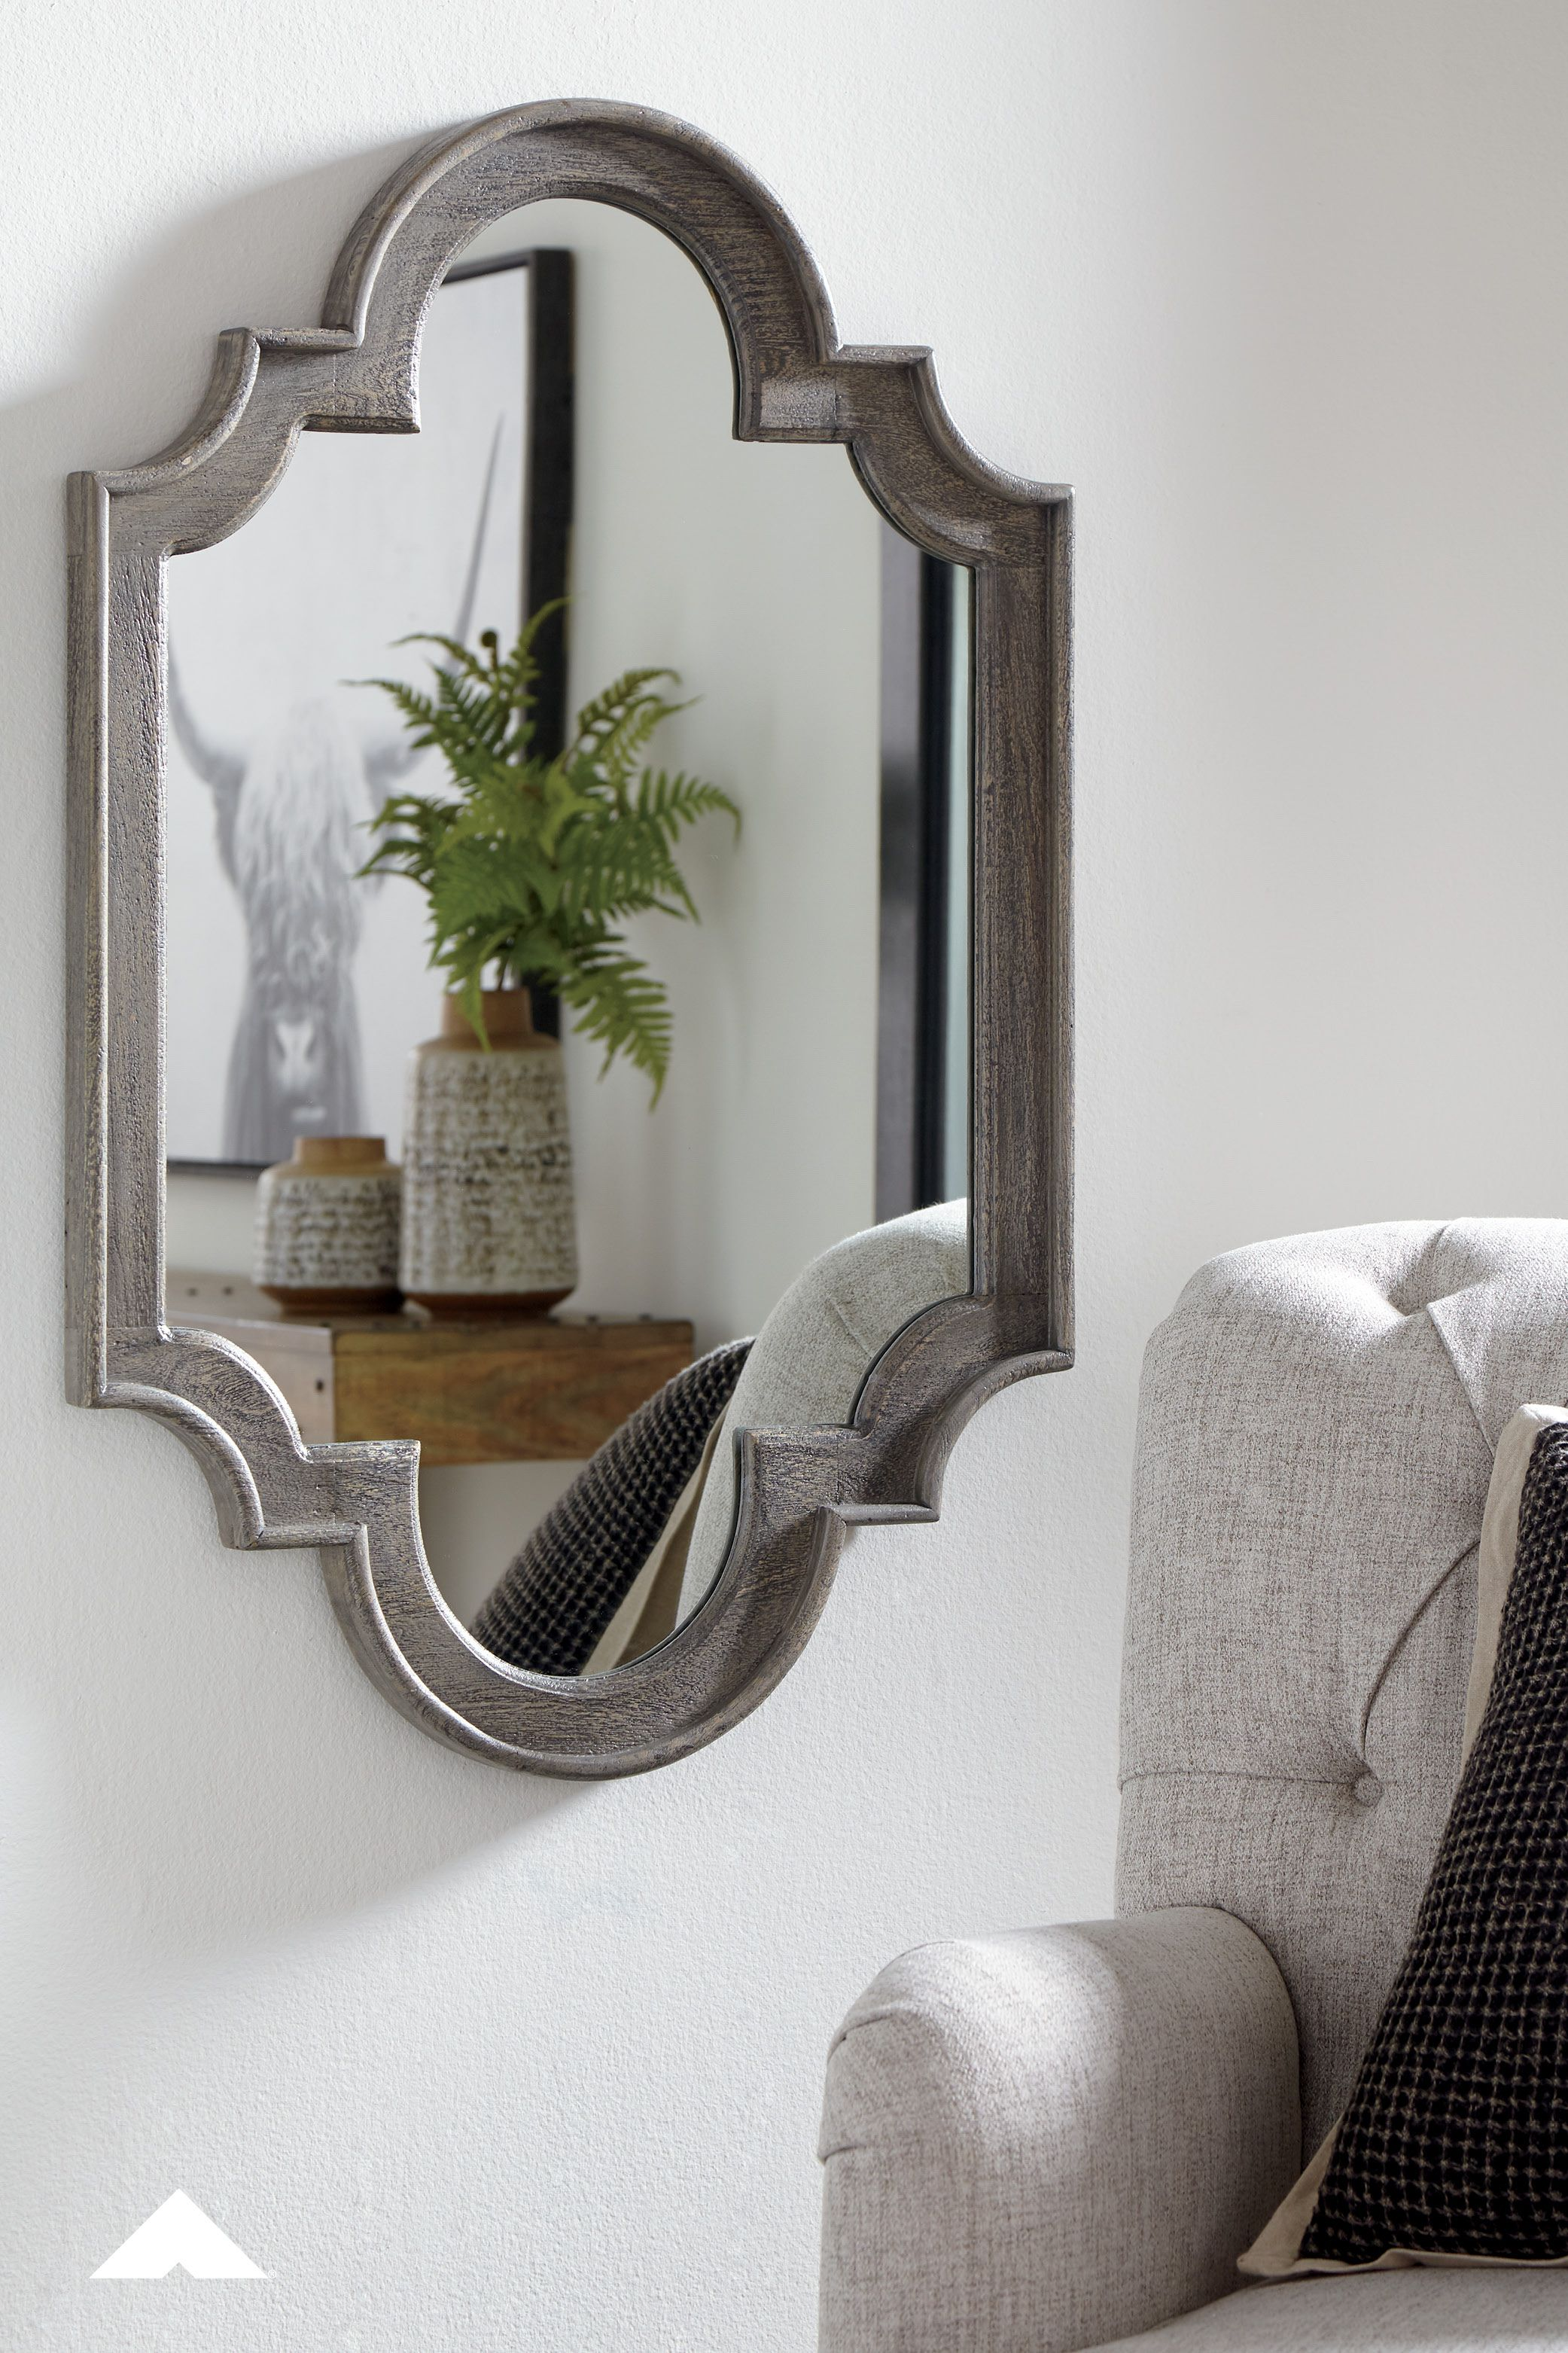 Williamette Antique Gray Accent Mirror Take A Fresh Turn On Tradition With This Striking Accent Mirror Richl Accent Mirrors Rustic Mirrors Mirror Wall Decor